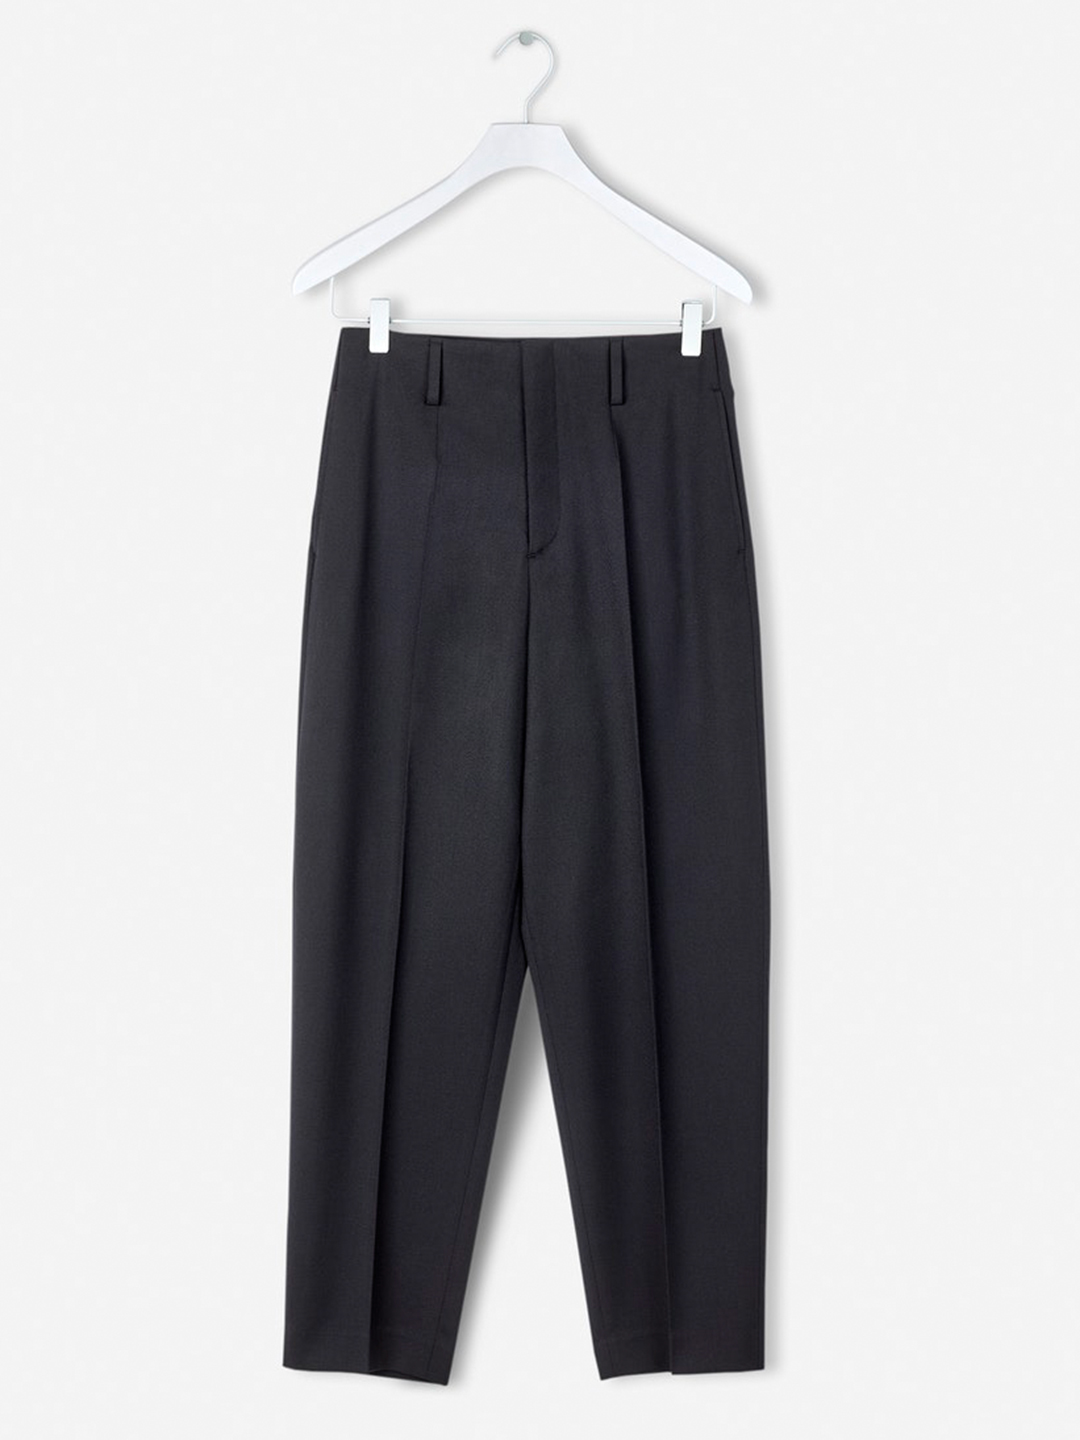 Karlie Trousers